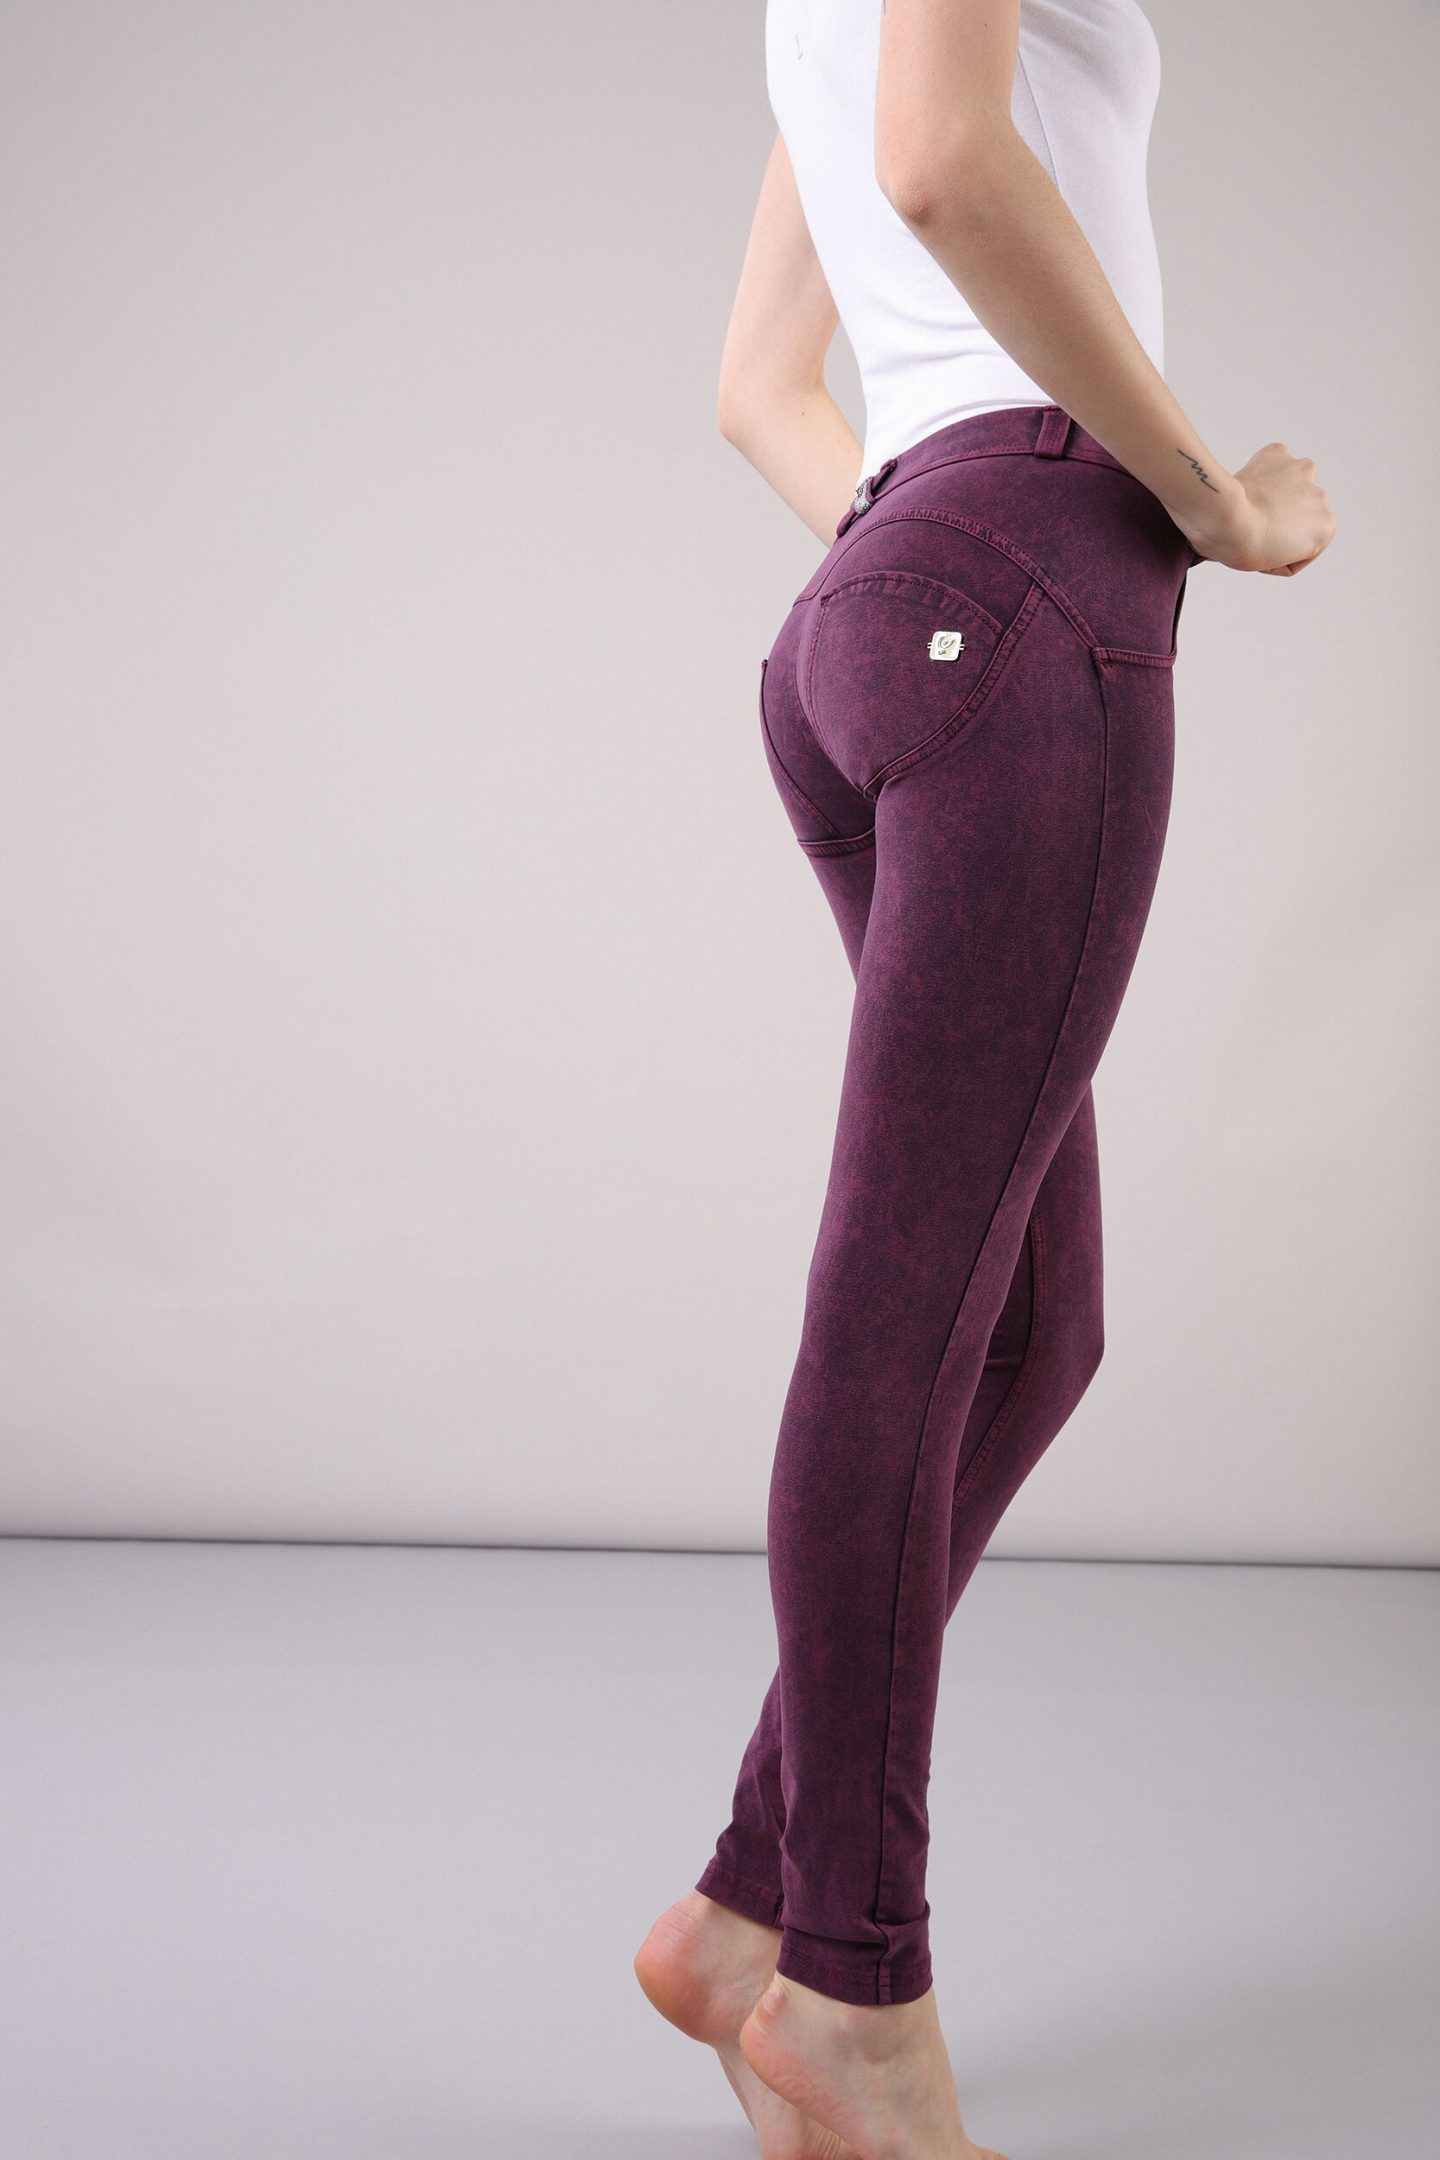 FINDING FLATTERING JEANS